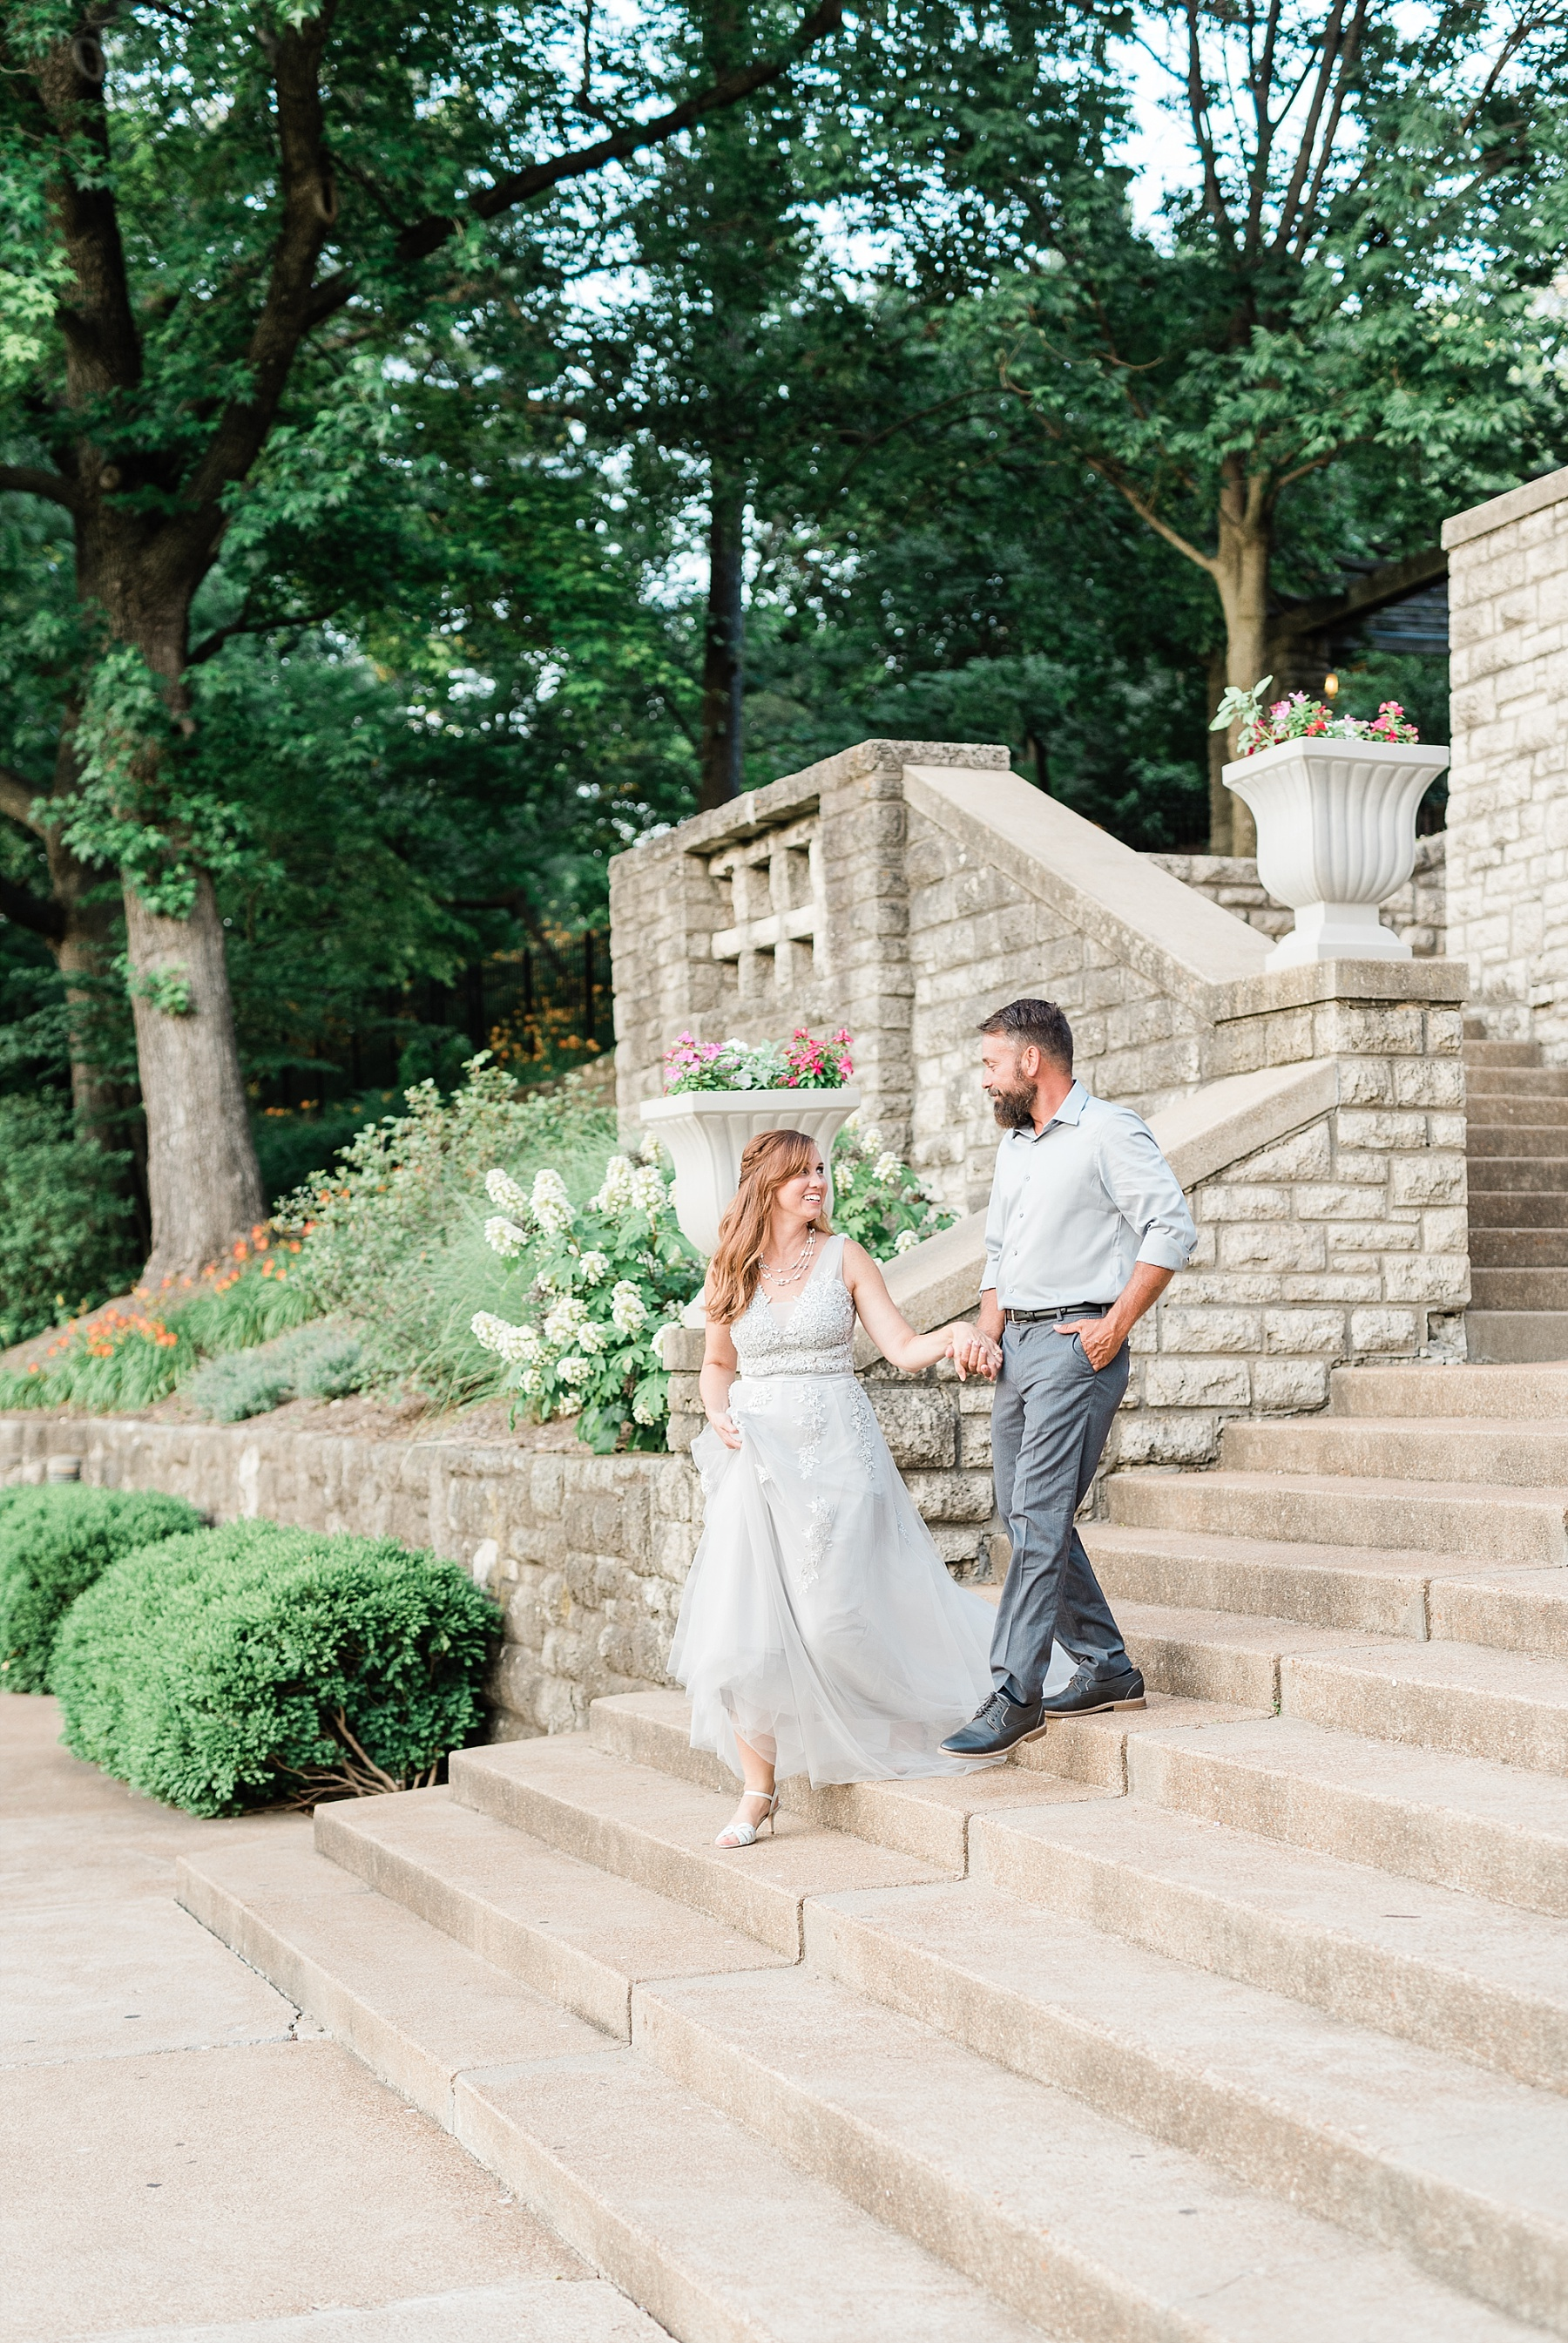 Chuck and Julie 25th Anniversary in Silver at Missouri Governor's Gardens by Kelsi Kliethermes Photography_0007.jpg